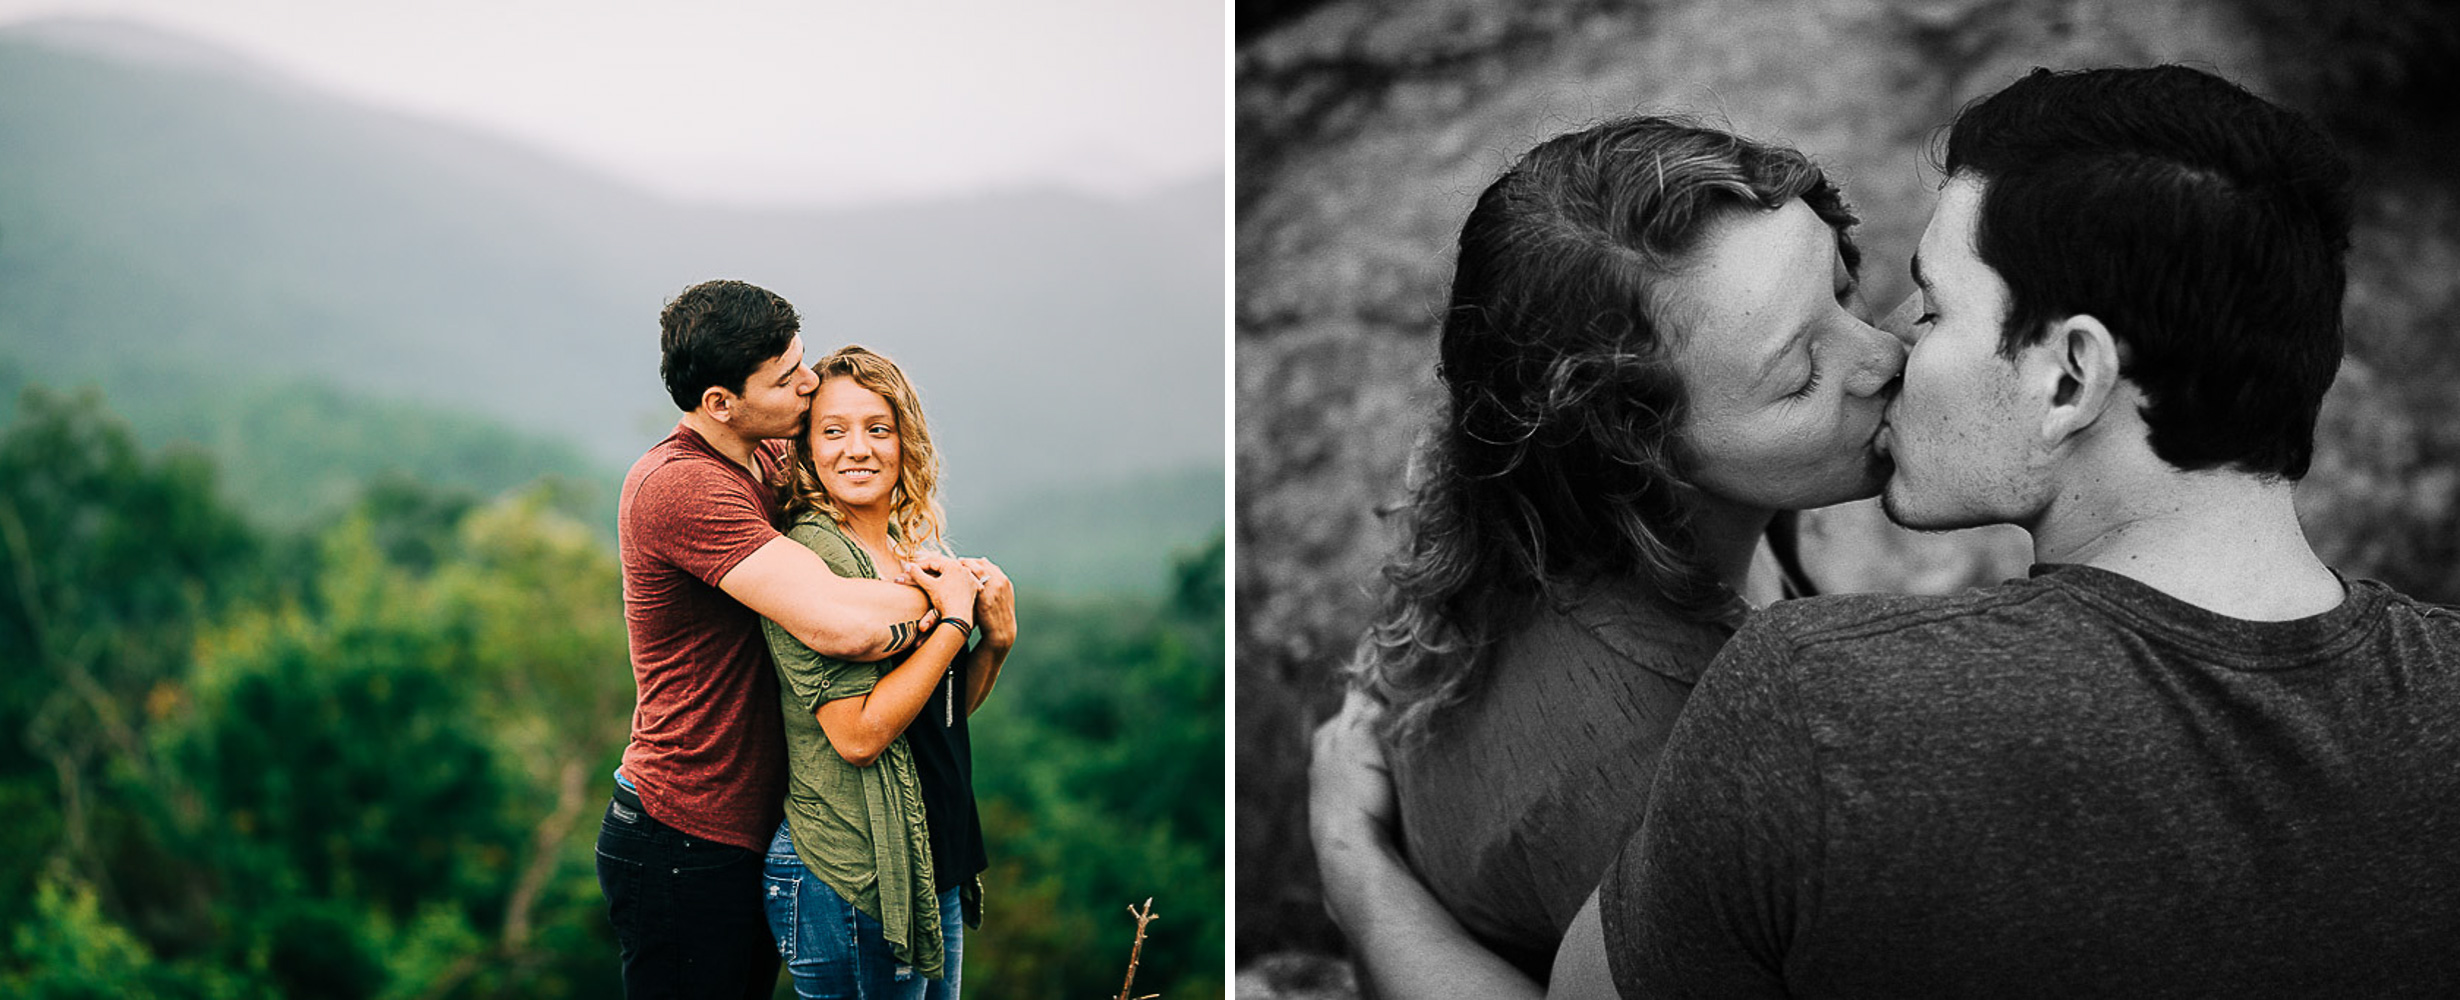 Mountain Engagement, Summer Engaement, Engaged, Engaement Portriats, Engagement Pictures, 14.jpg